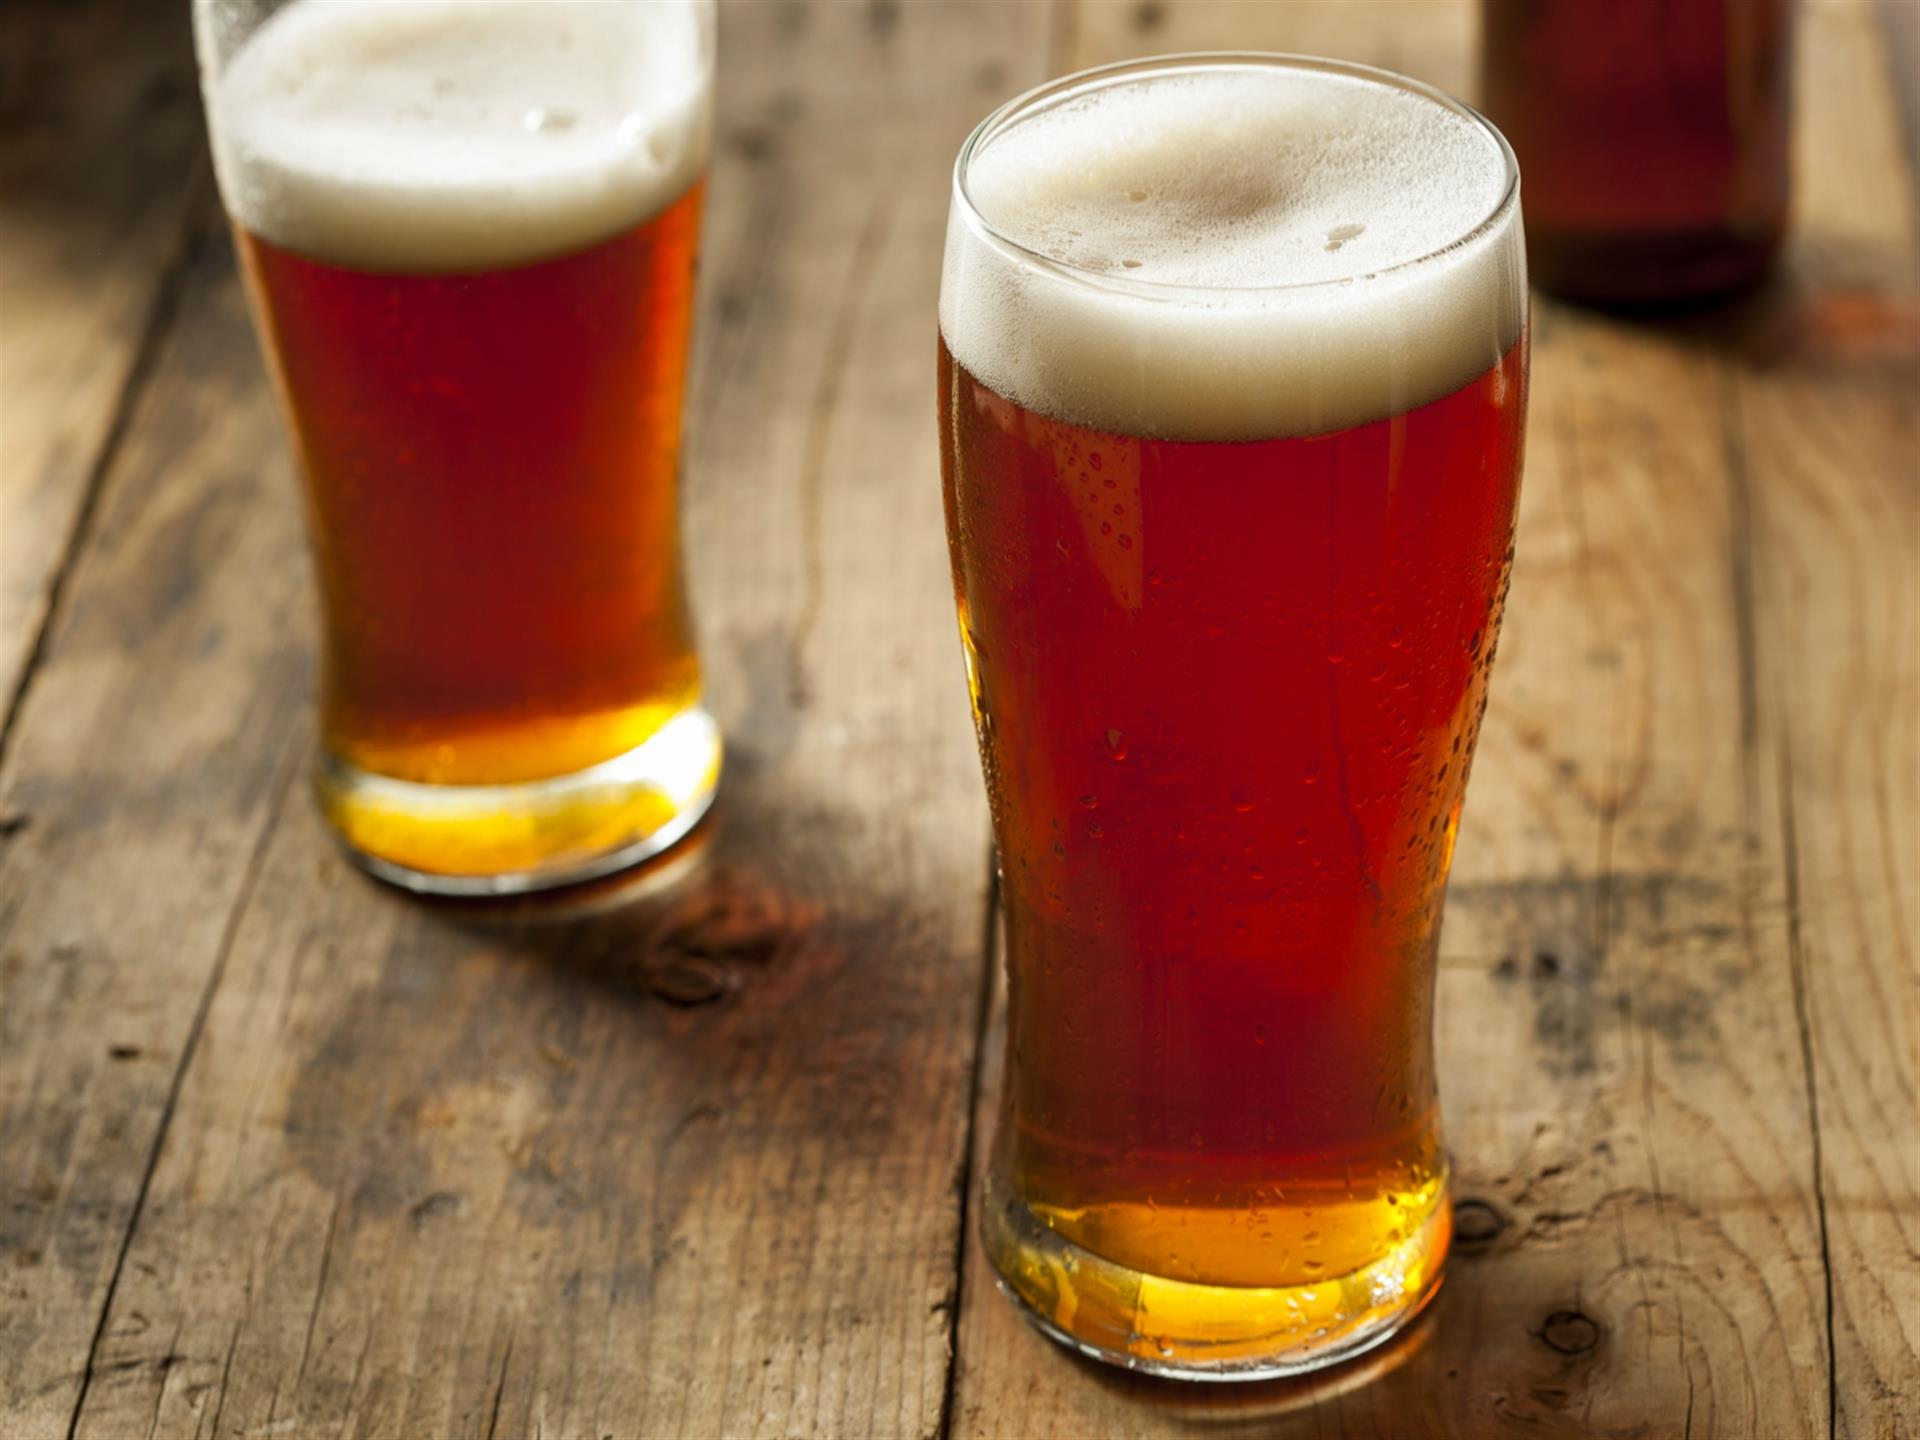 two pints of beer on a wooden table